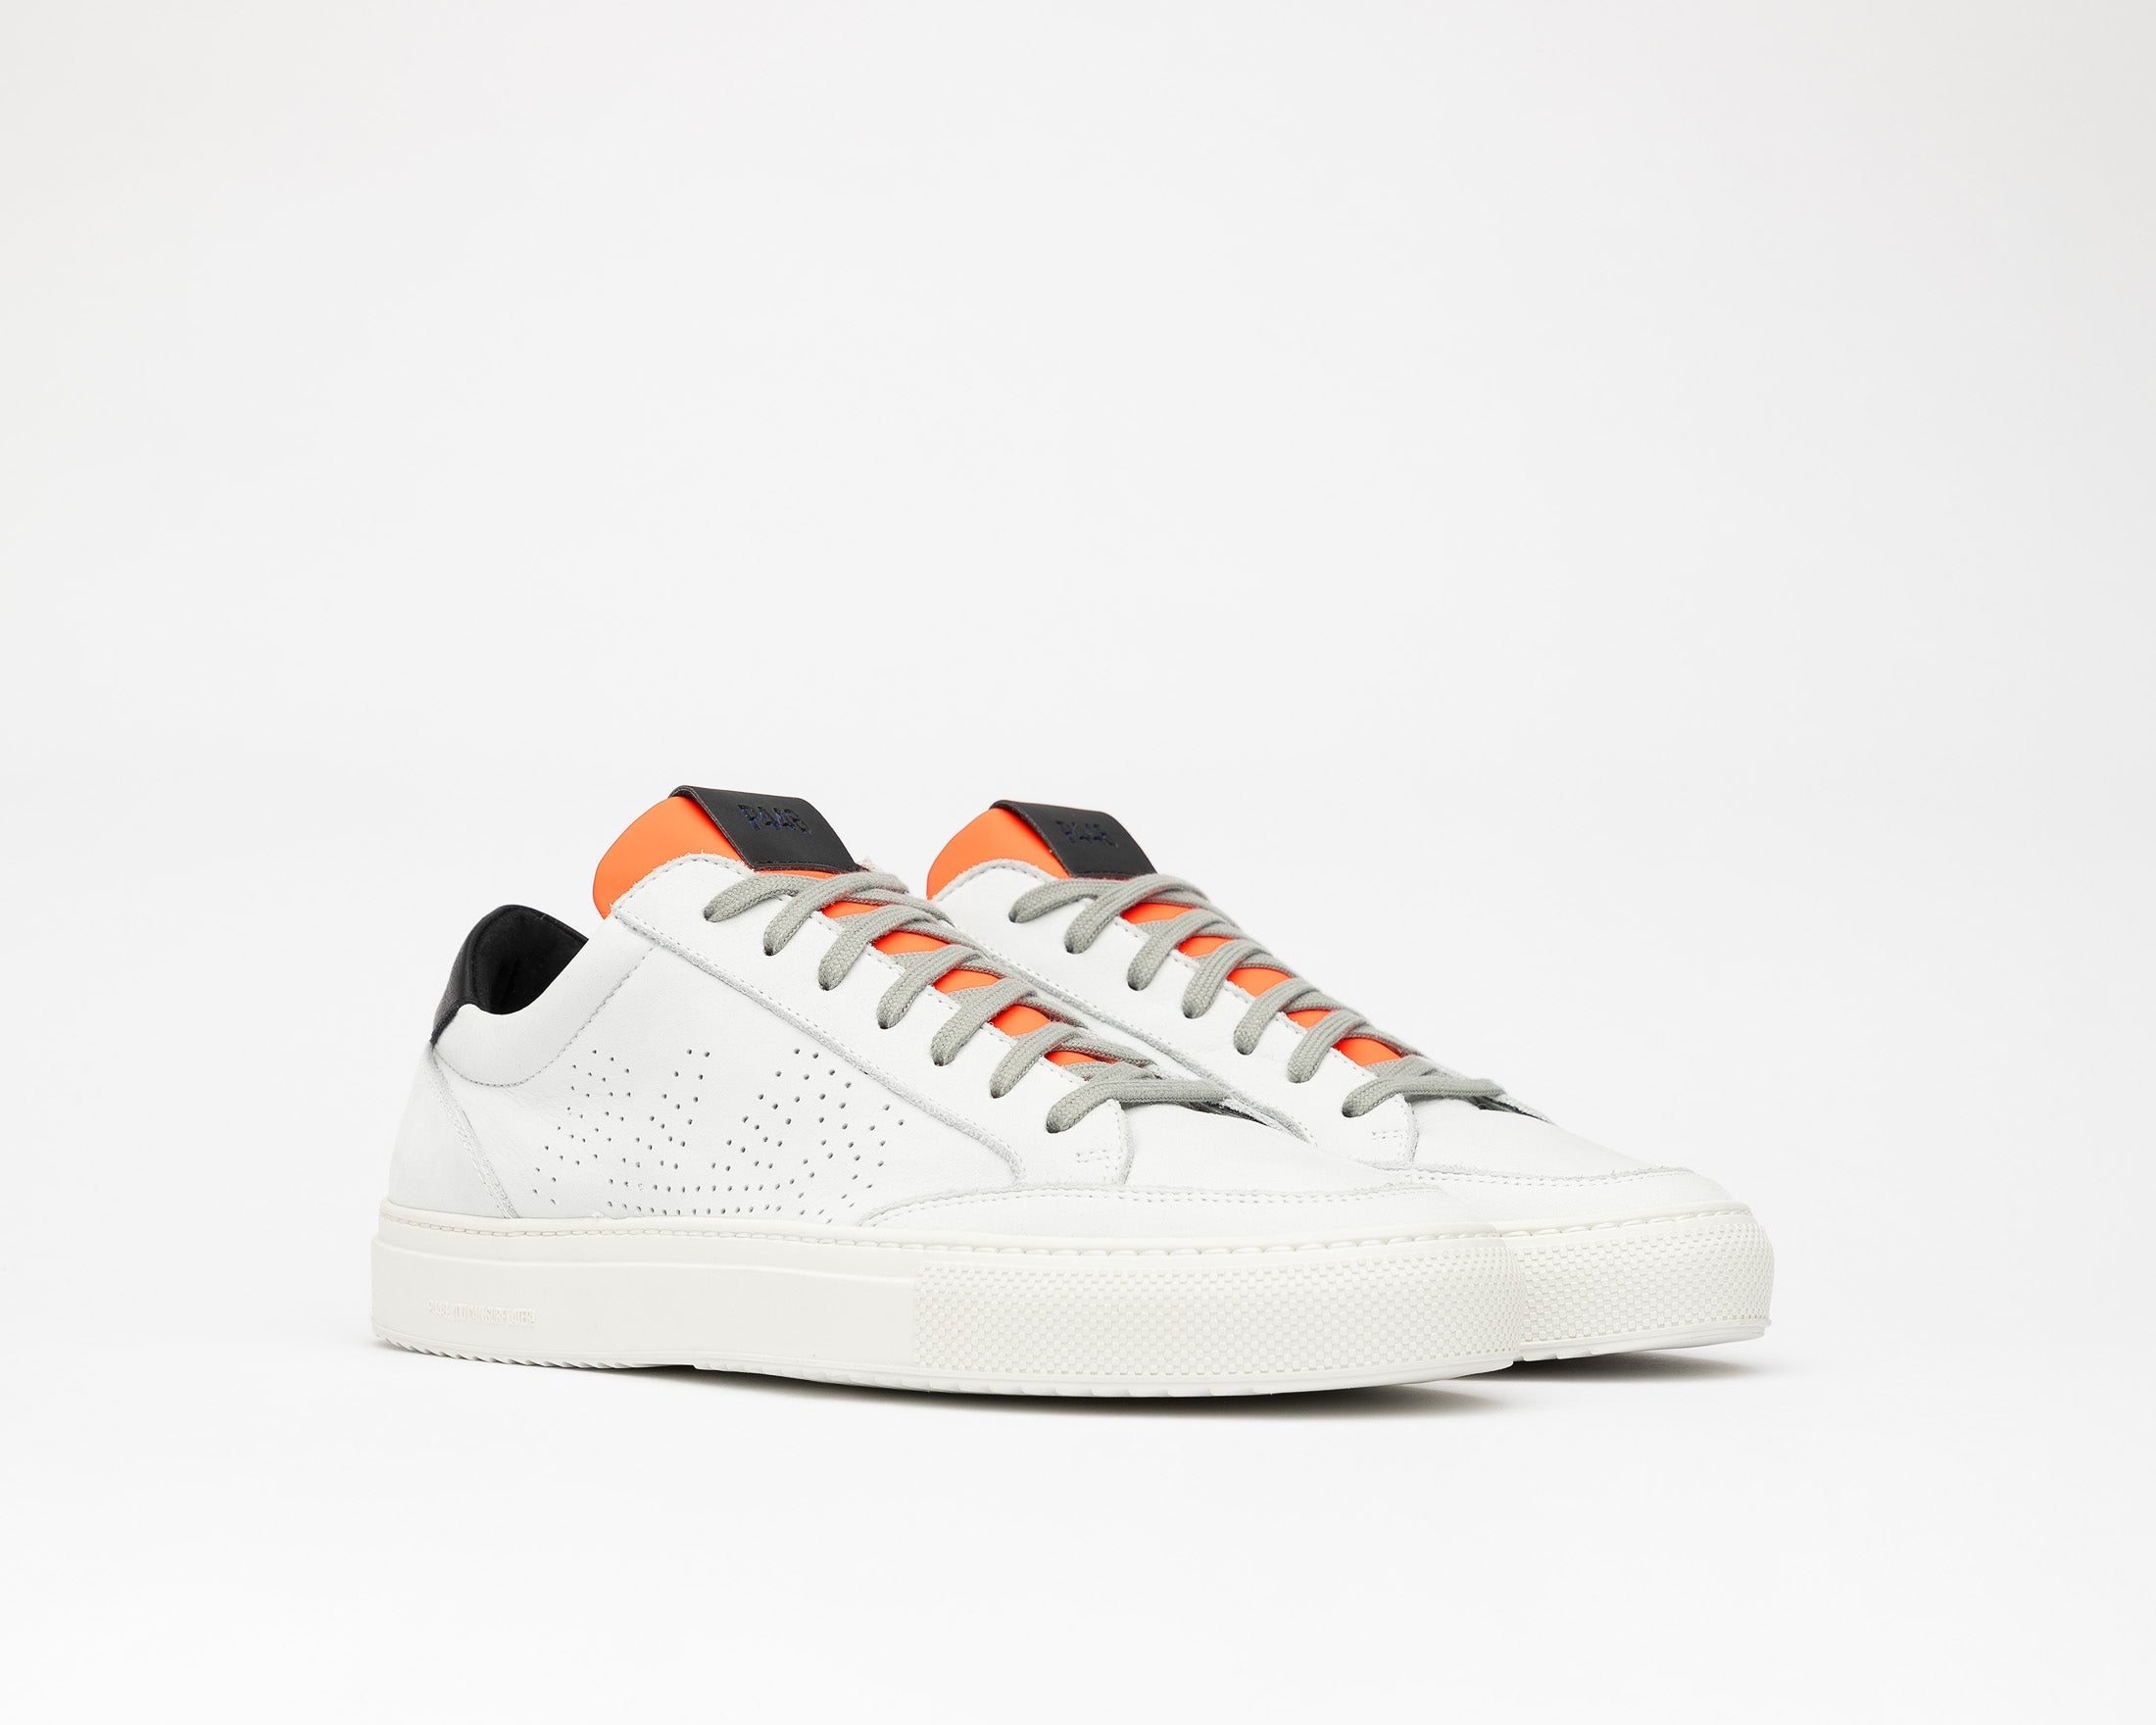 Soho White/Orange - Mens Sneaker - Side